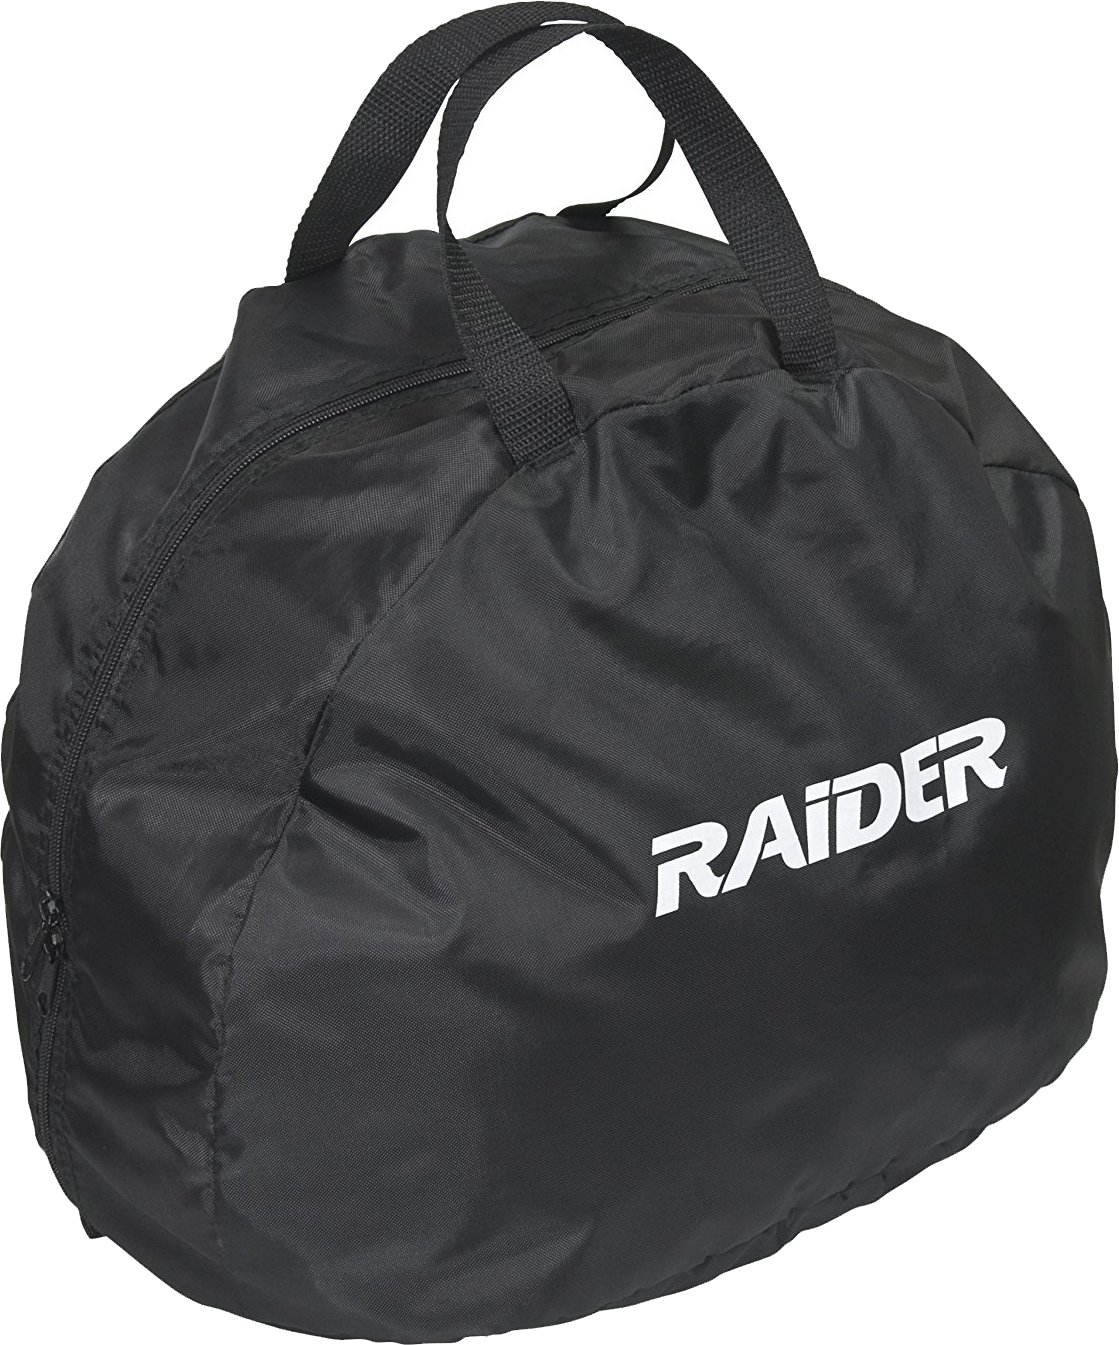 Raider BCS-8B Durable Deluxe Nylon Motorcycle Helmet Bag, Black by Raider